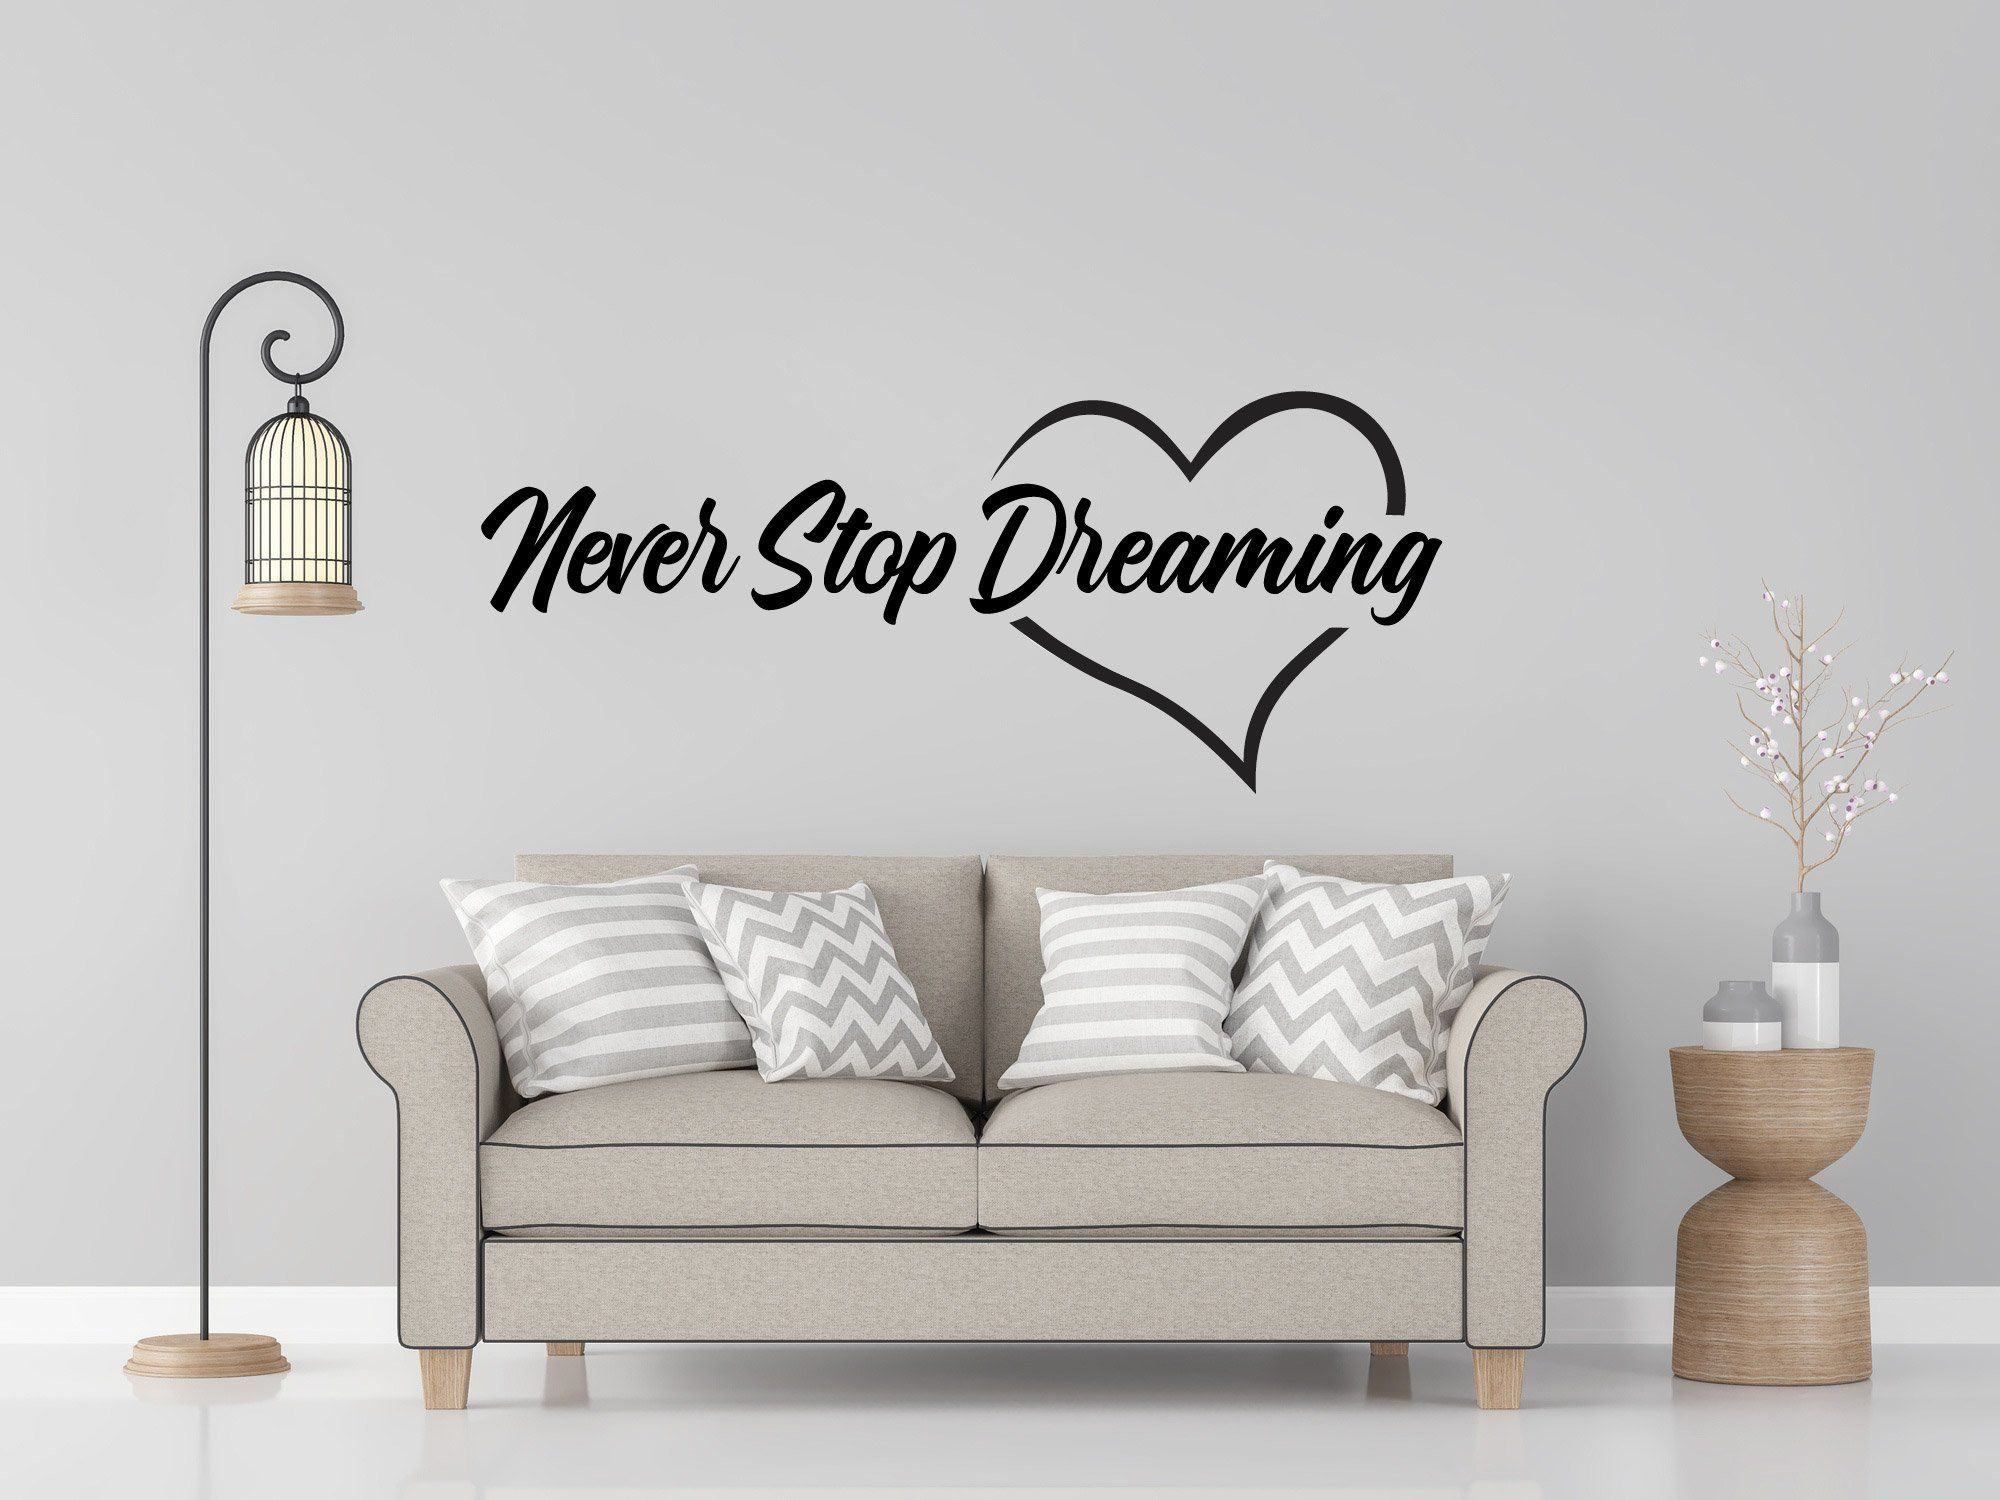 Never Stop Dreaming Wall Decor Decal In 2020 With Images Vinyl